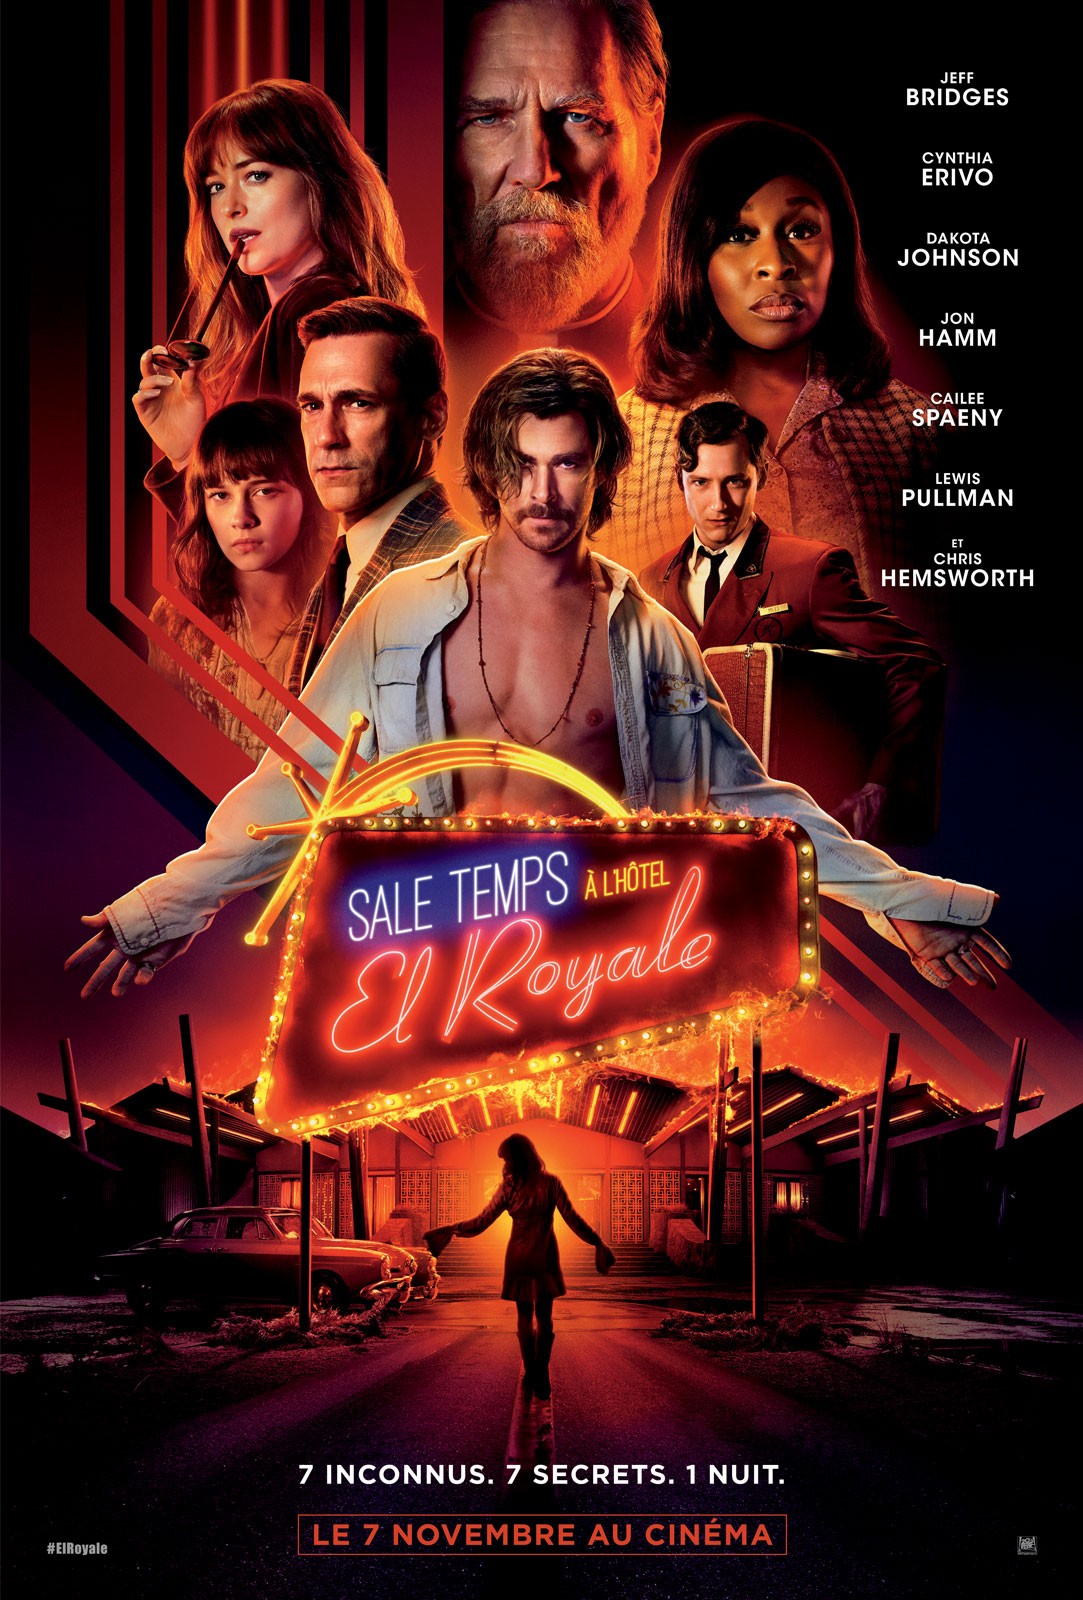 Sale temps à l'hôtel El Royale streaming